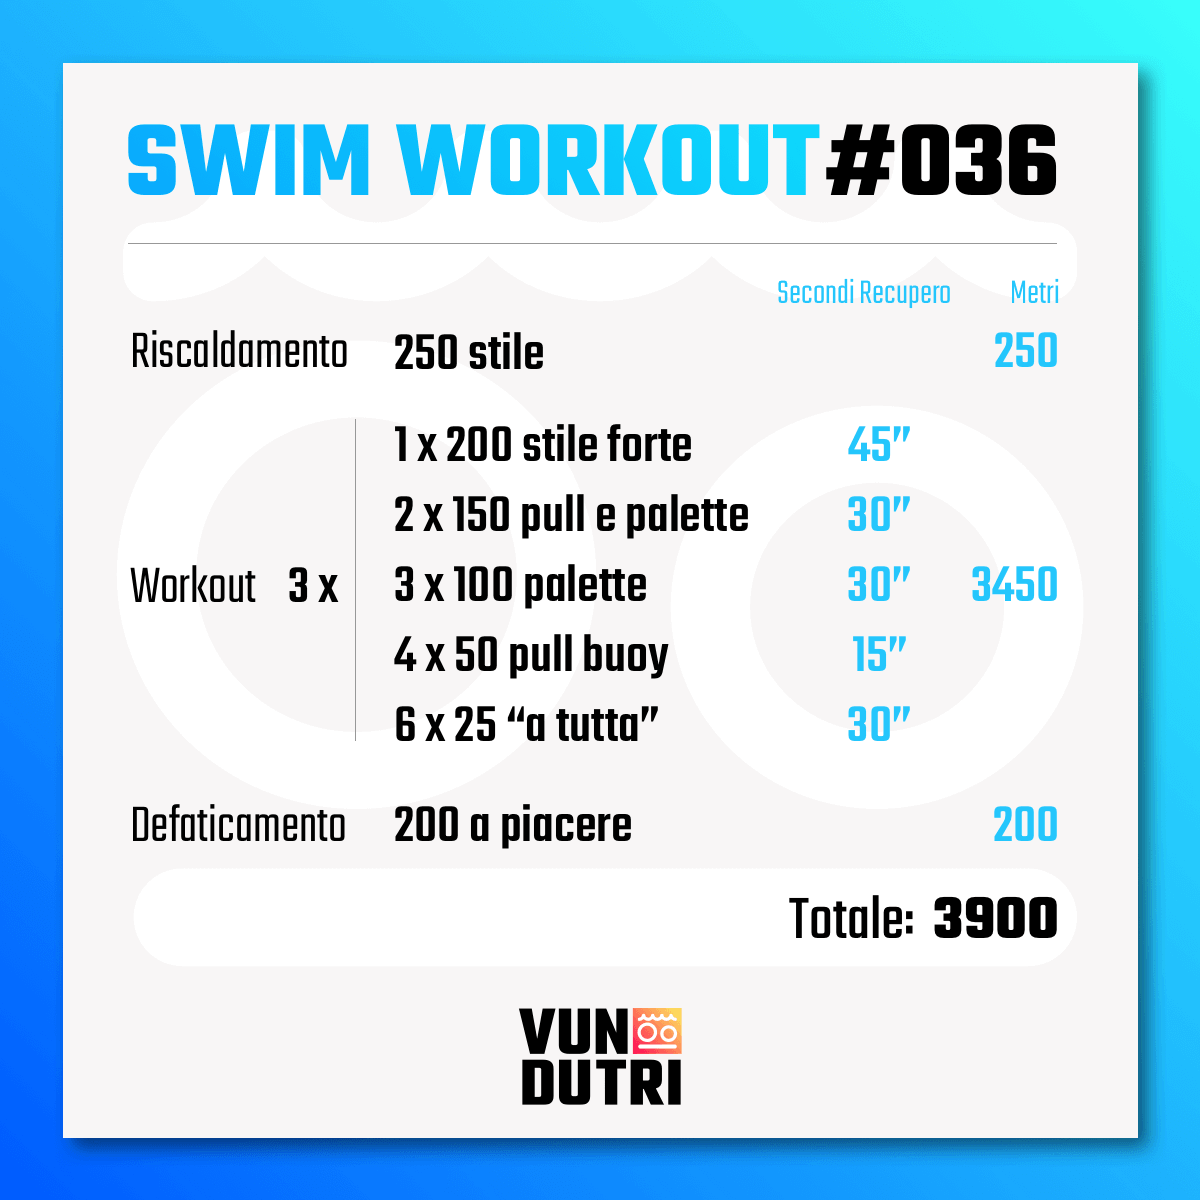 Swim workout 036